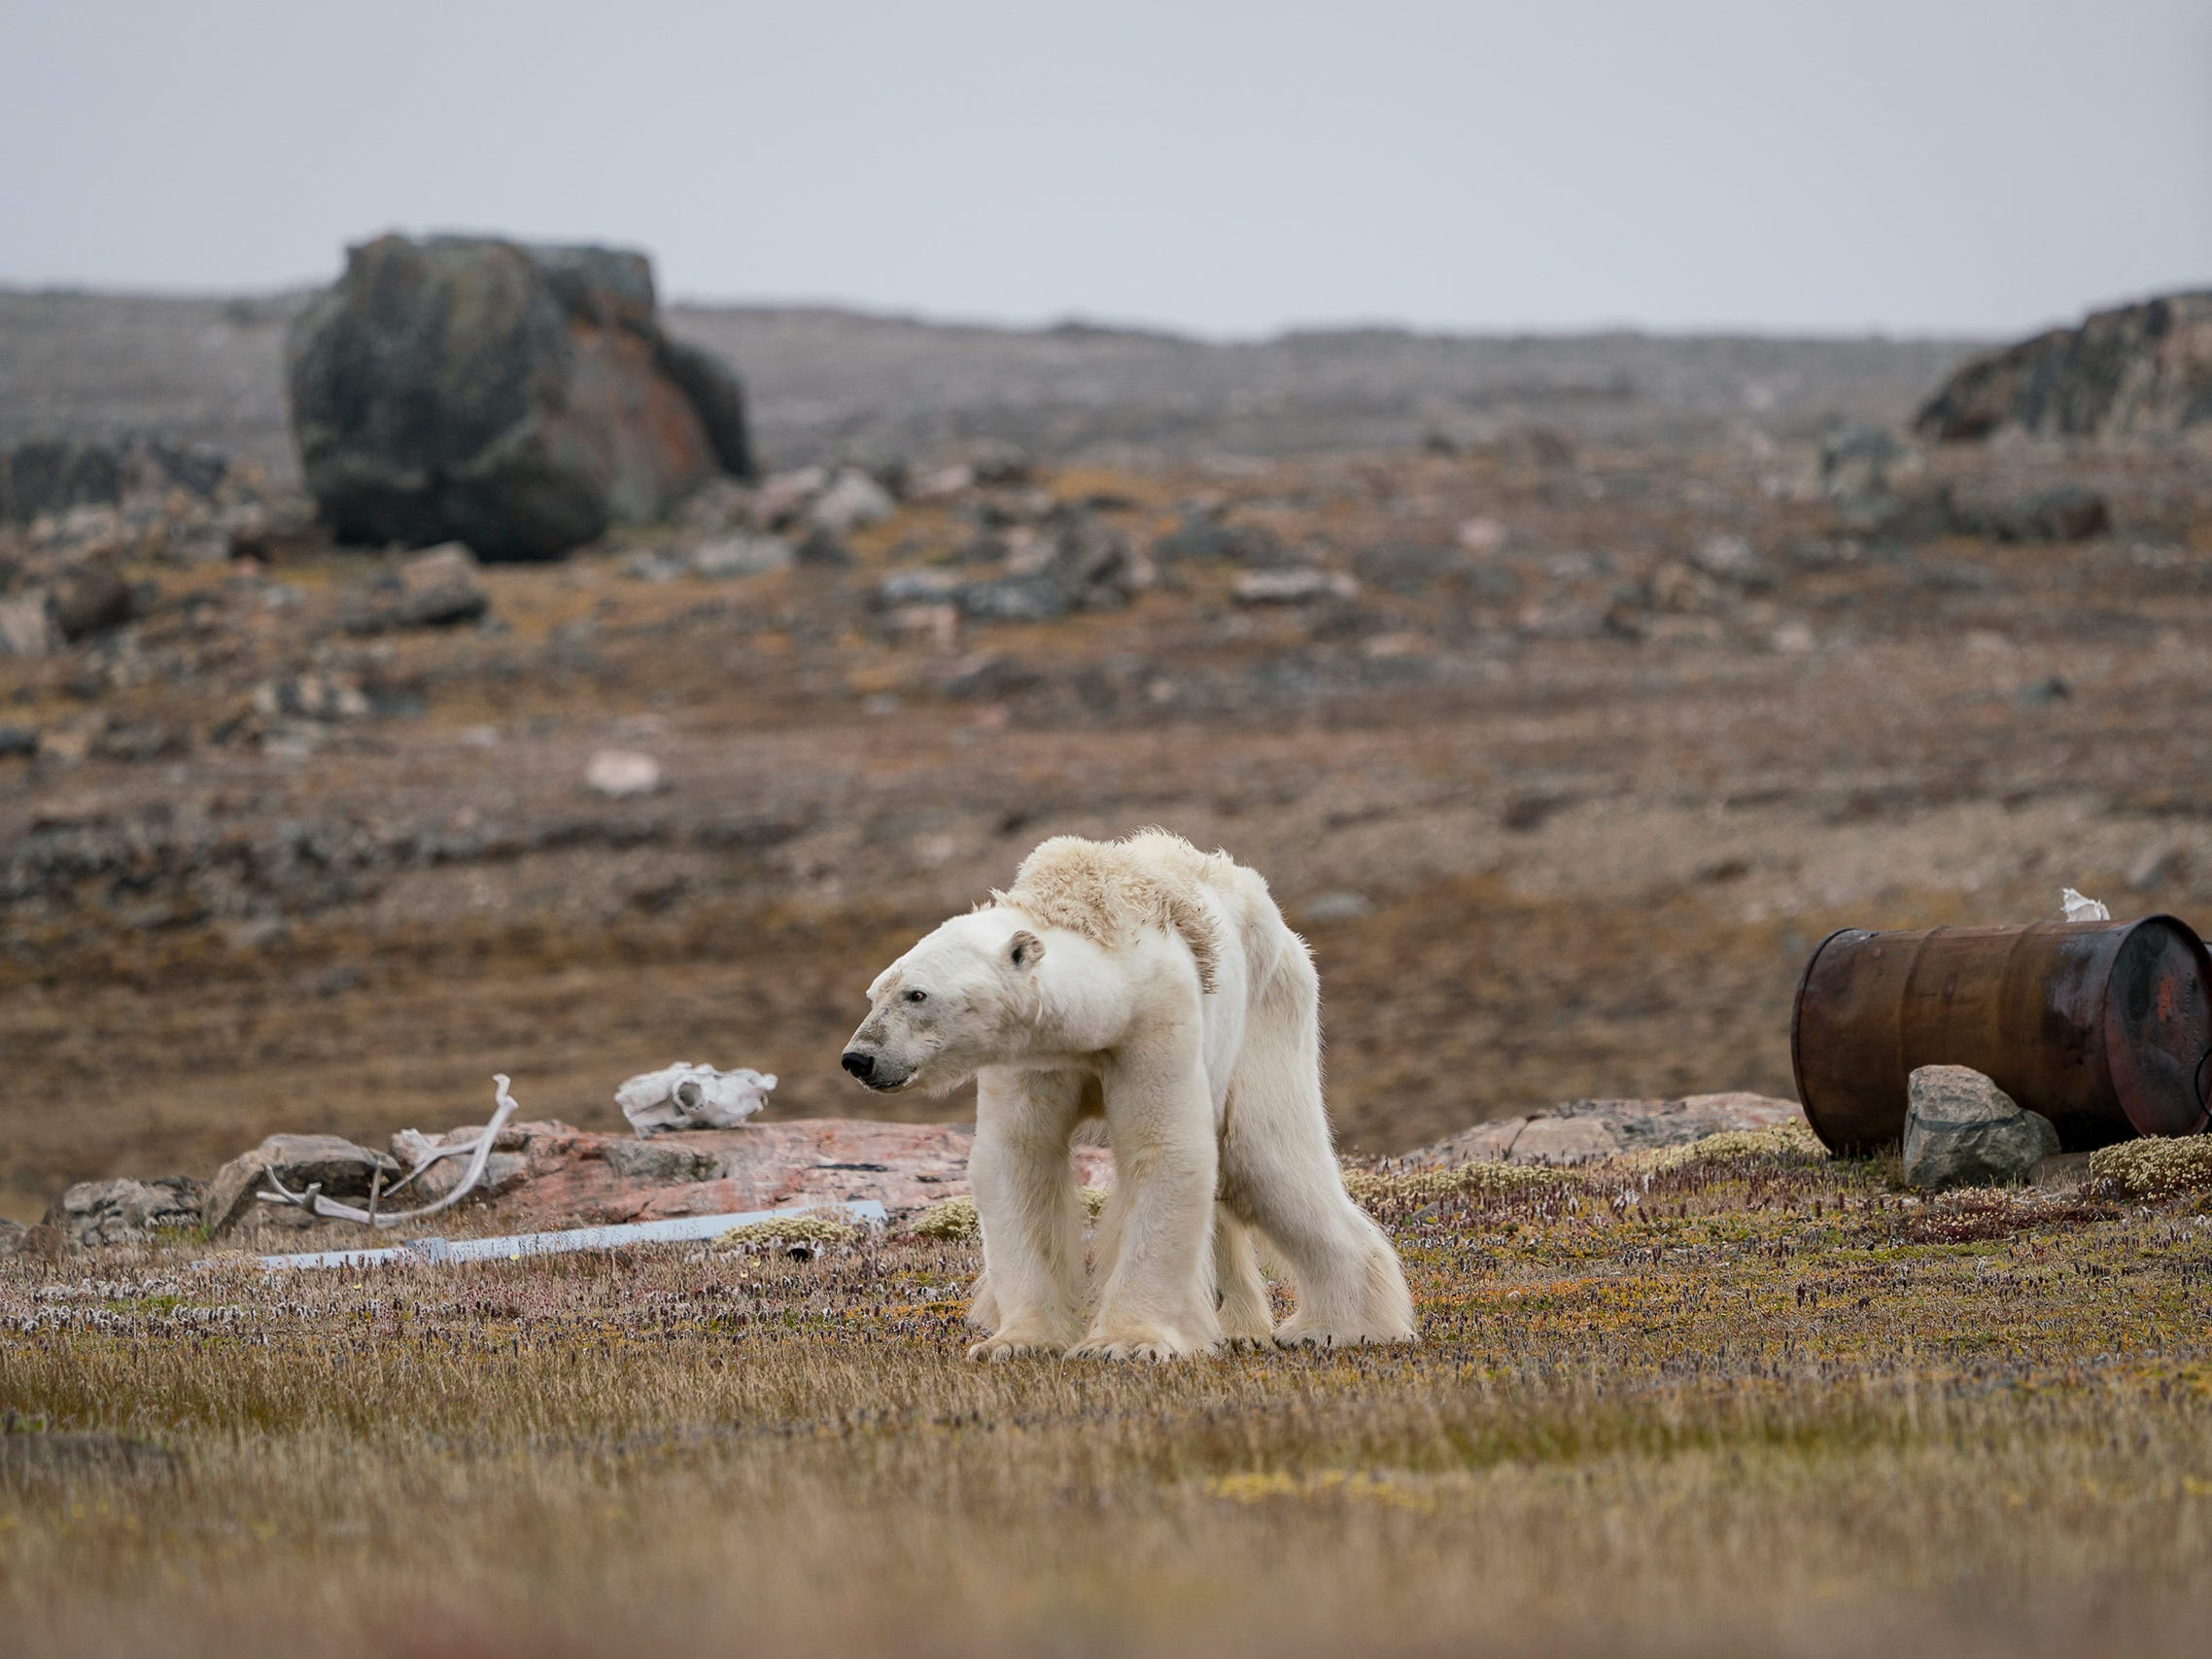 A Polar Bear's Struggle by Justin Hofman, USA -- Justin's whole body pained as he watched this starving polar bear at an abandoned hunter's camp, in the Canadian Arctic, slowly heave itself up to standing. With little, and thinning, ice to move around on, the bear is unable to search for food. -- Sony a7R II + Sony FE 100-400mm f4.5-5.6 GM OSS lens; 1/200 sec at f10; ISO 800.